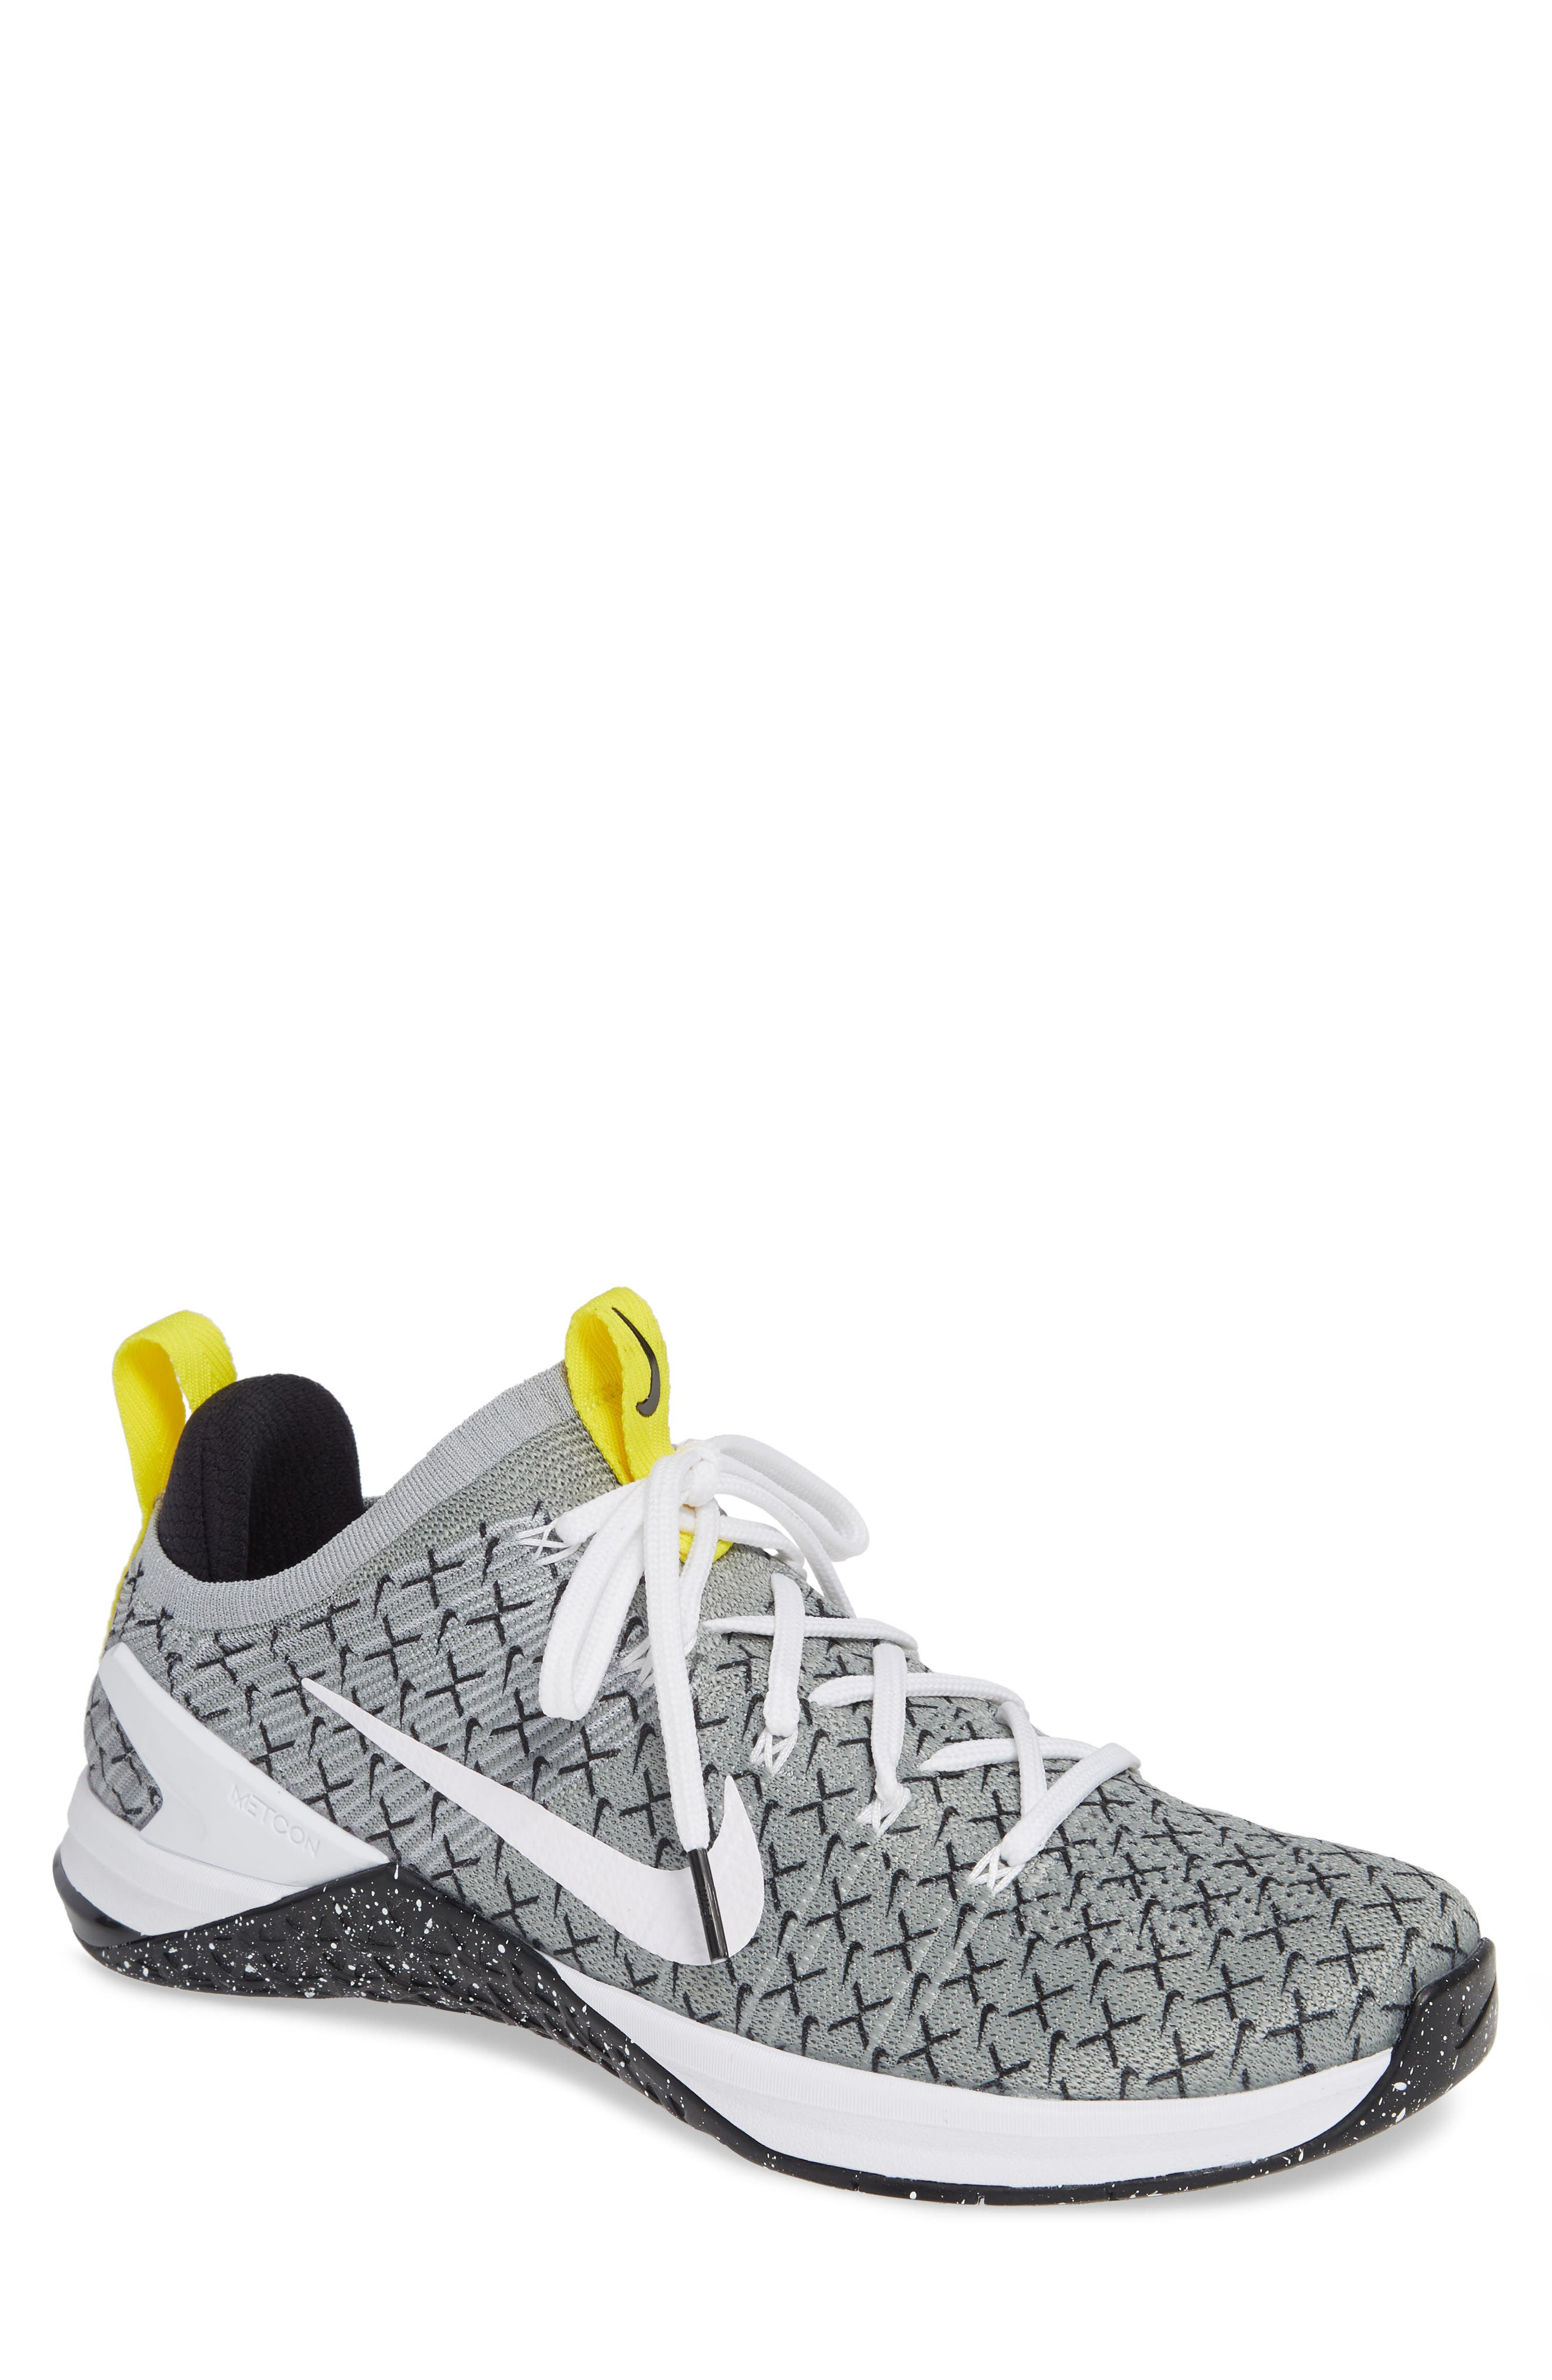 Metcon DSX Flyknit 2 Training Shoe,                         Main,                         color, 017